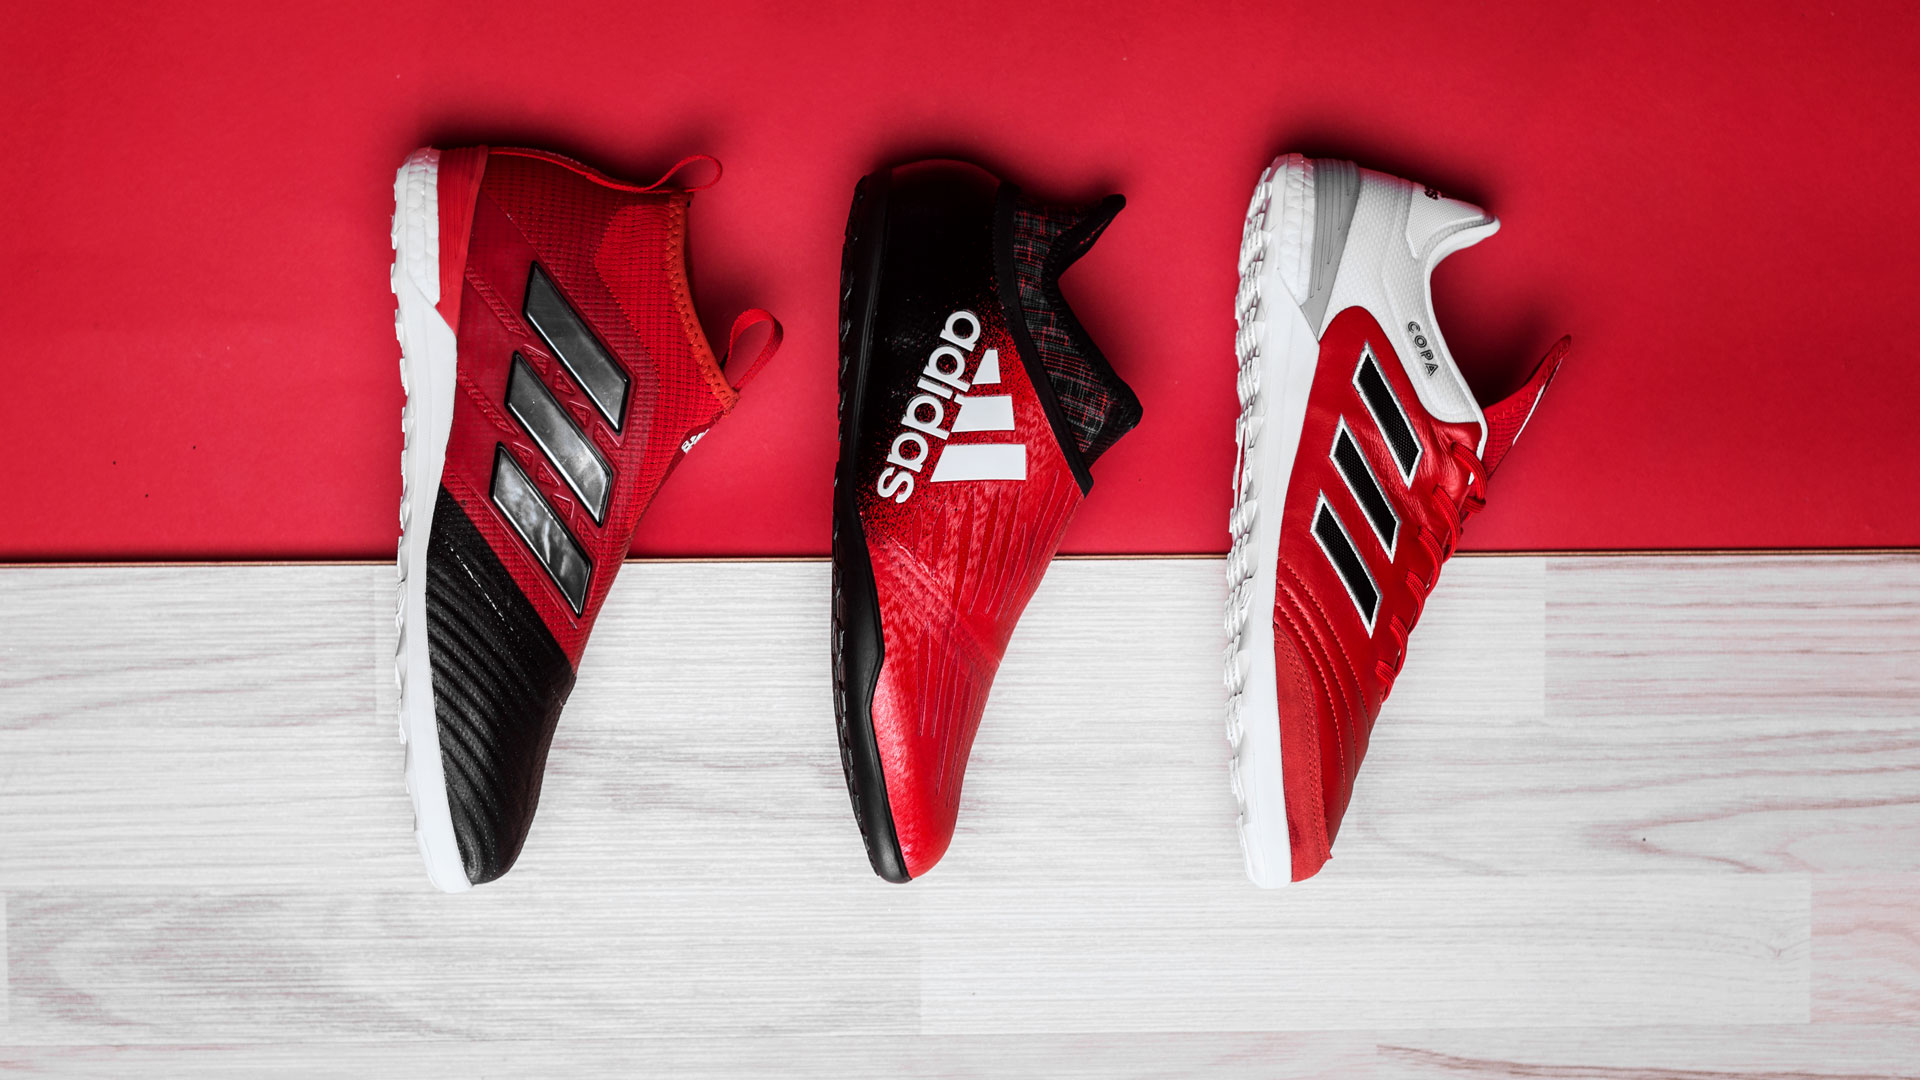 new products 2297b 0529e adidas Tango collection  Pro-level performance for street and indoor  football